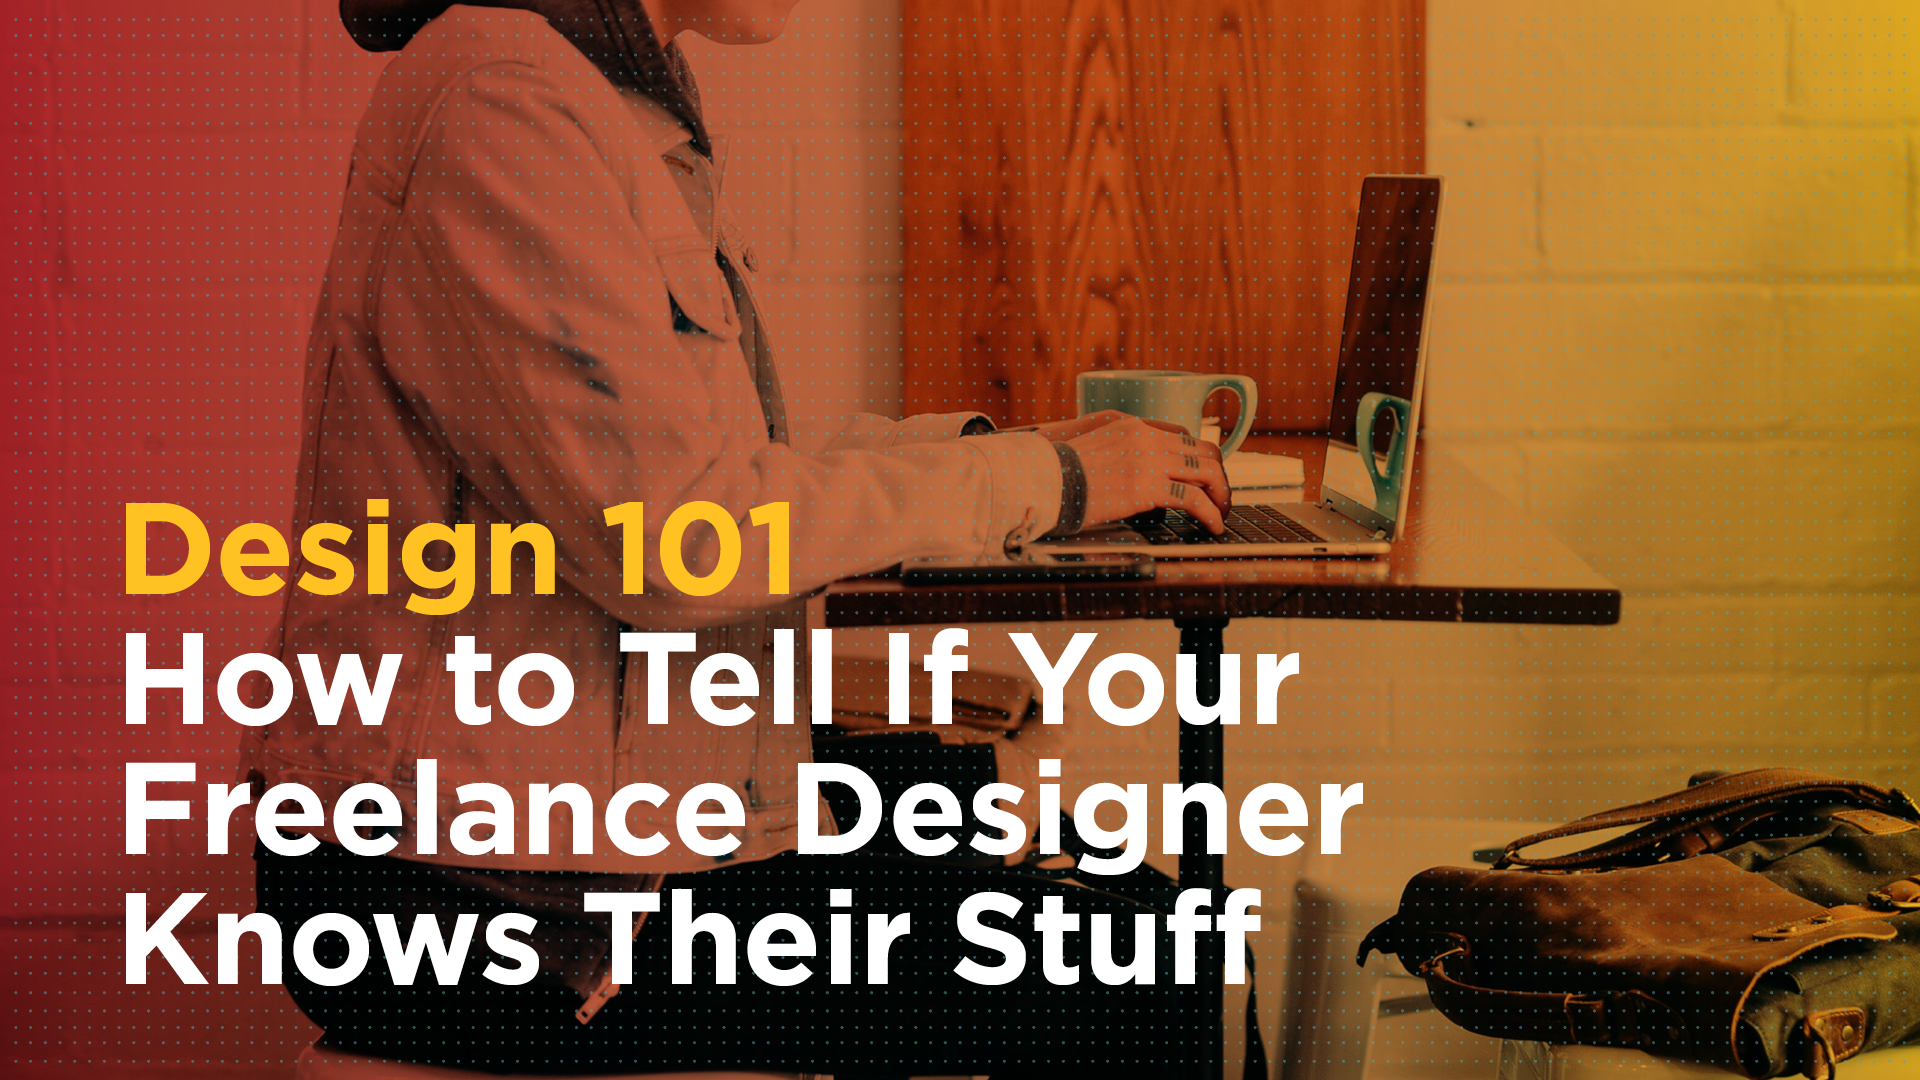 Design 101: How to Tell If Your Freelance Designer Knows Their Stuff Featured Image